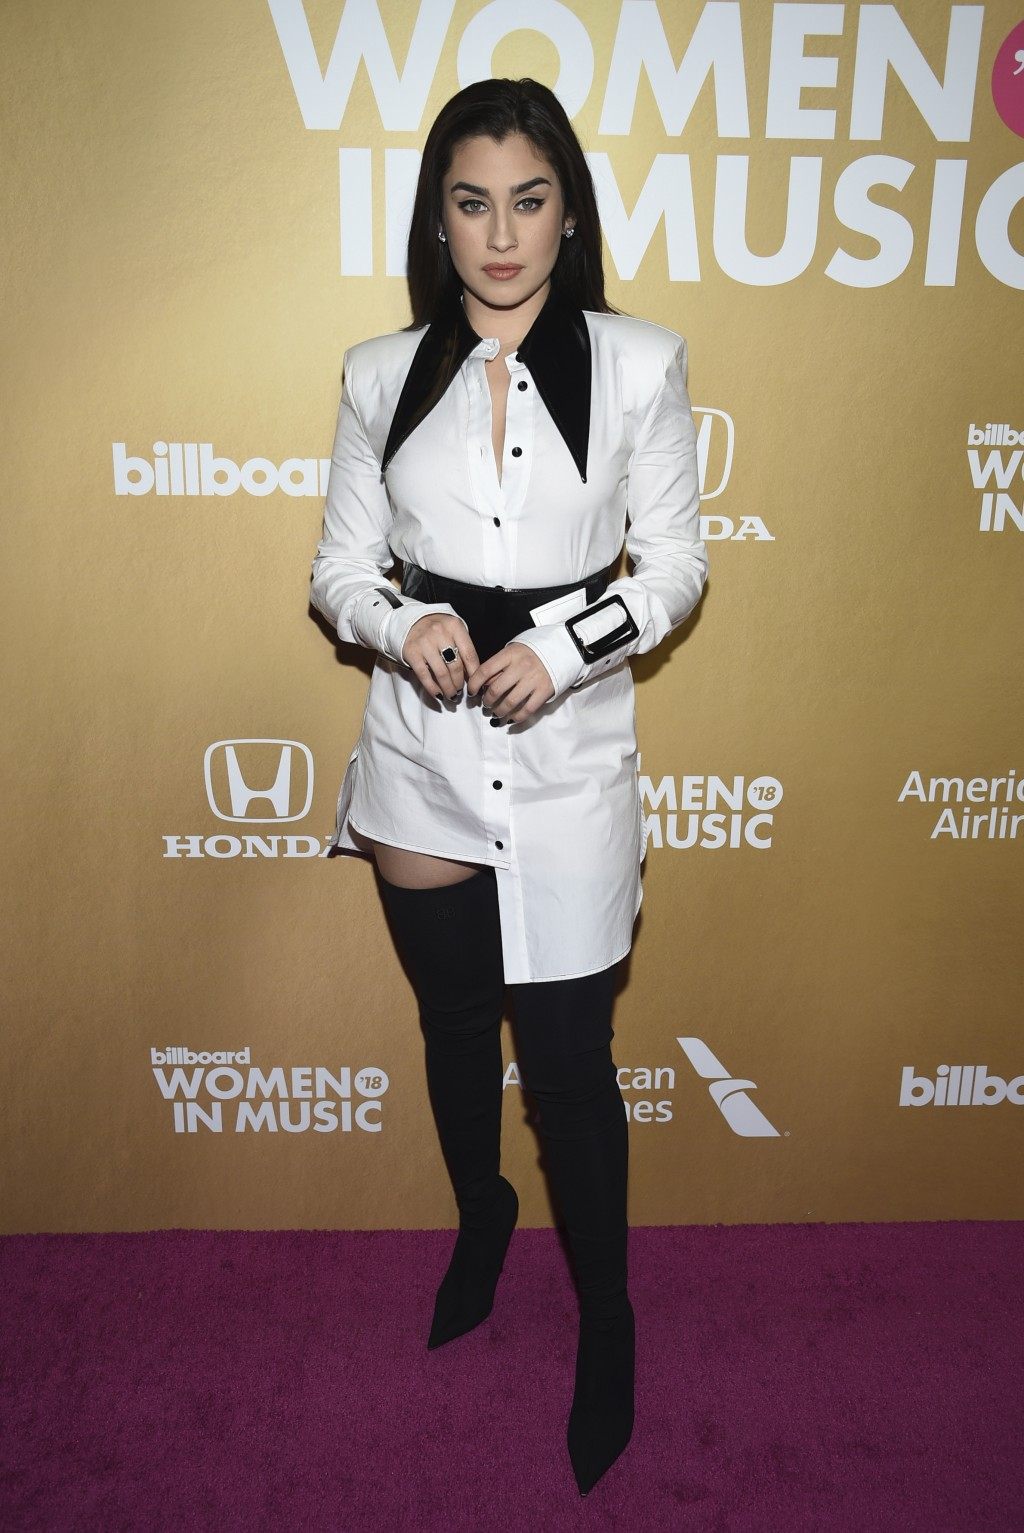 Lauren Jauregui attends the 13th annual Billboard Women in Music event at Pier 36 on Thursday, Dec. 6, 2018, in New York. (Photo by Evan Agostini/Invi